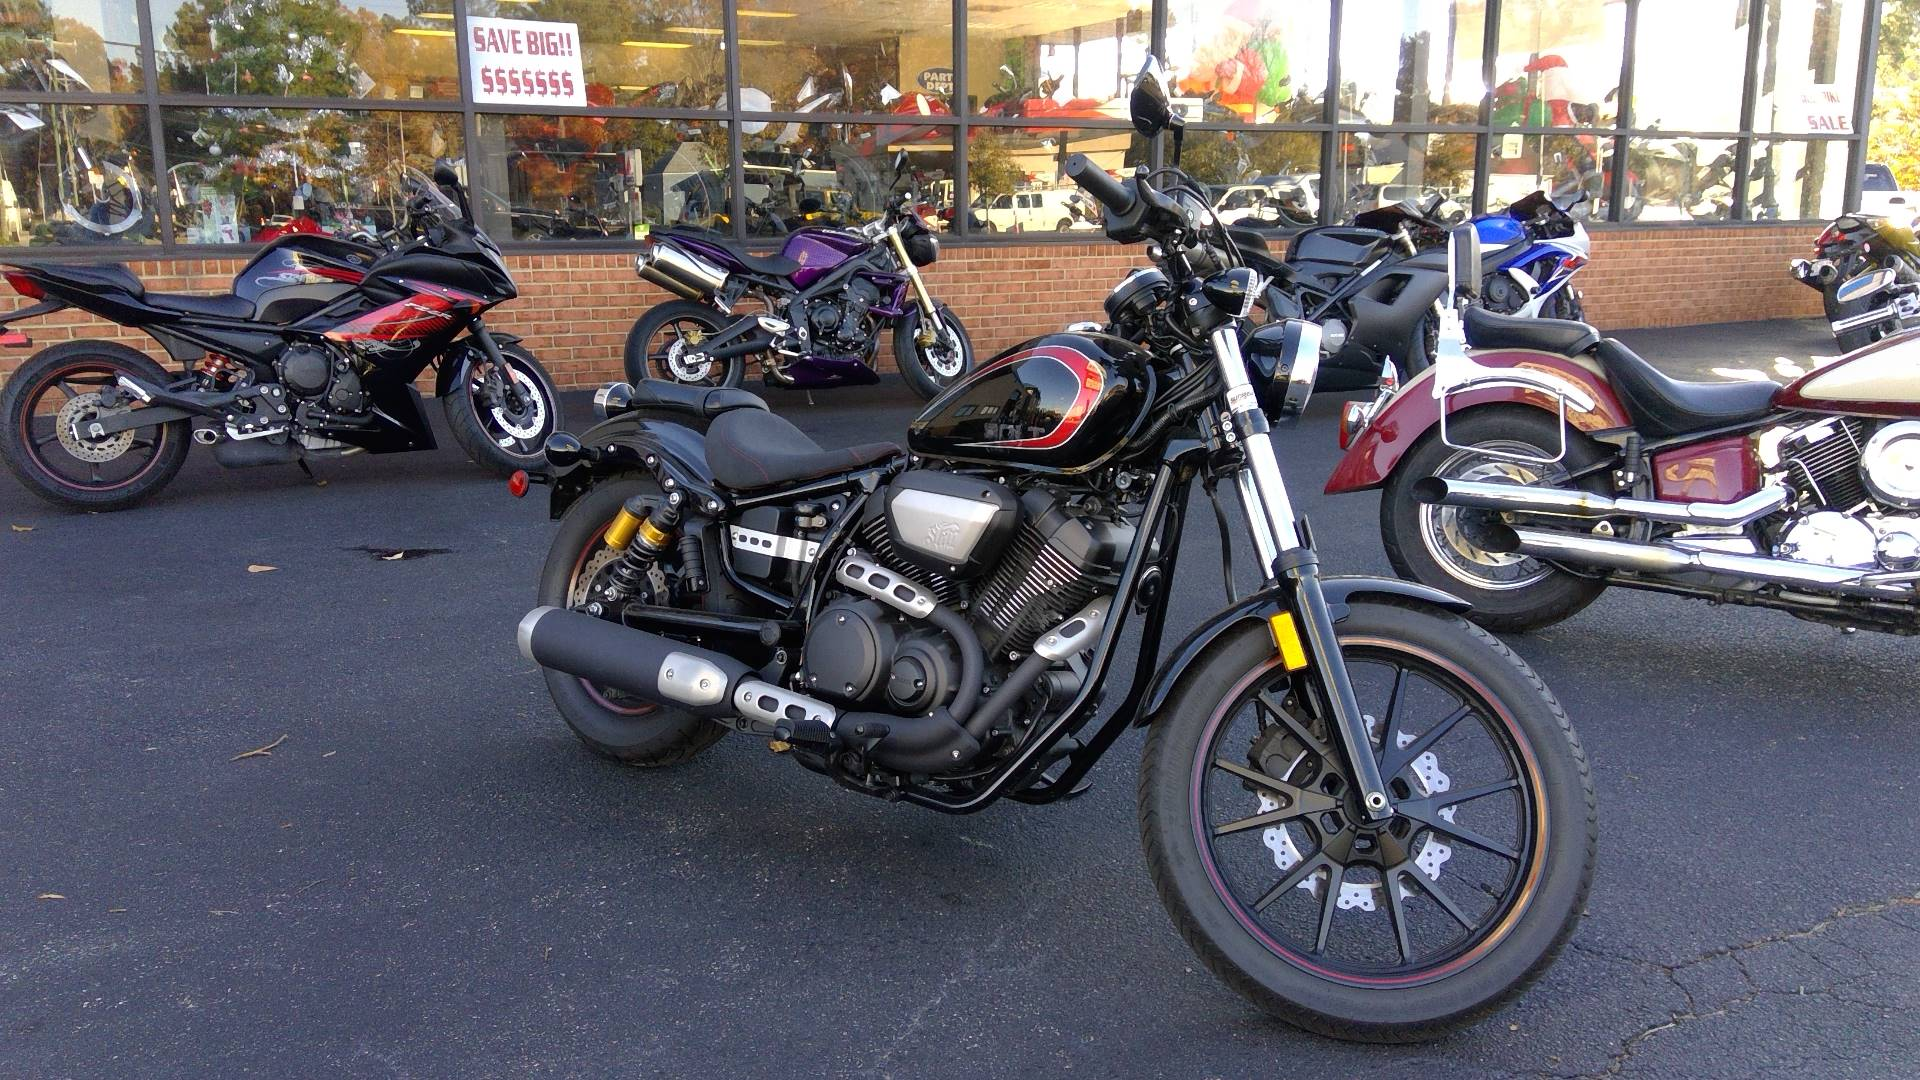 Used 2015 Yamaha Bolt R-Spec Motorcycles for Sale in Norfolk, VA ...